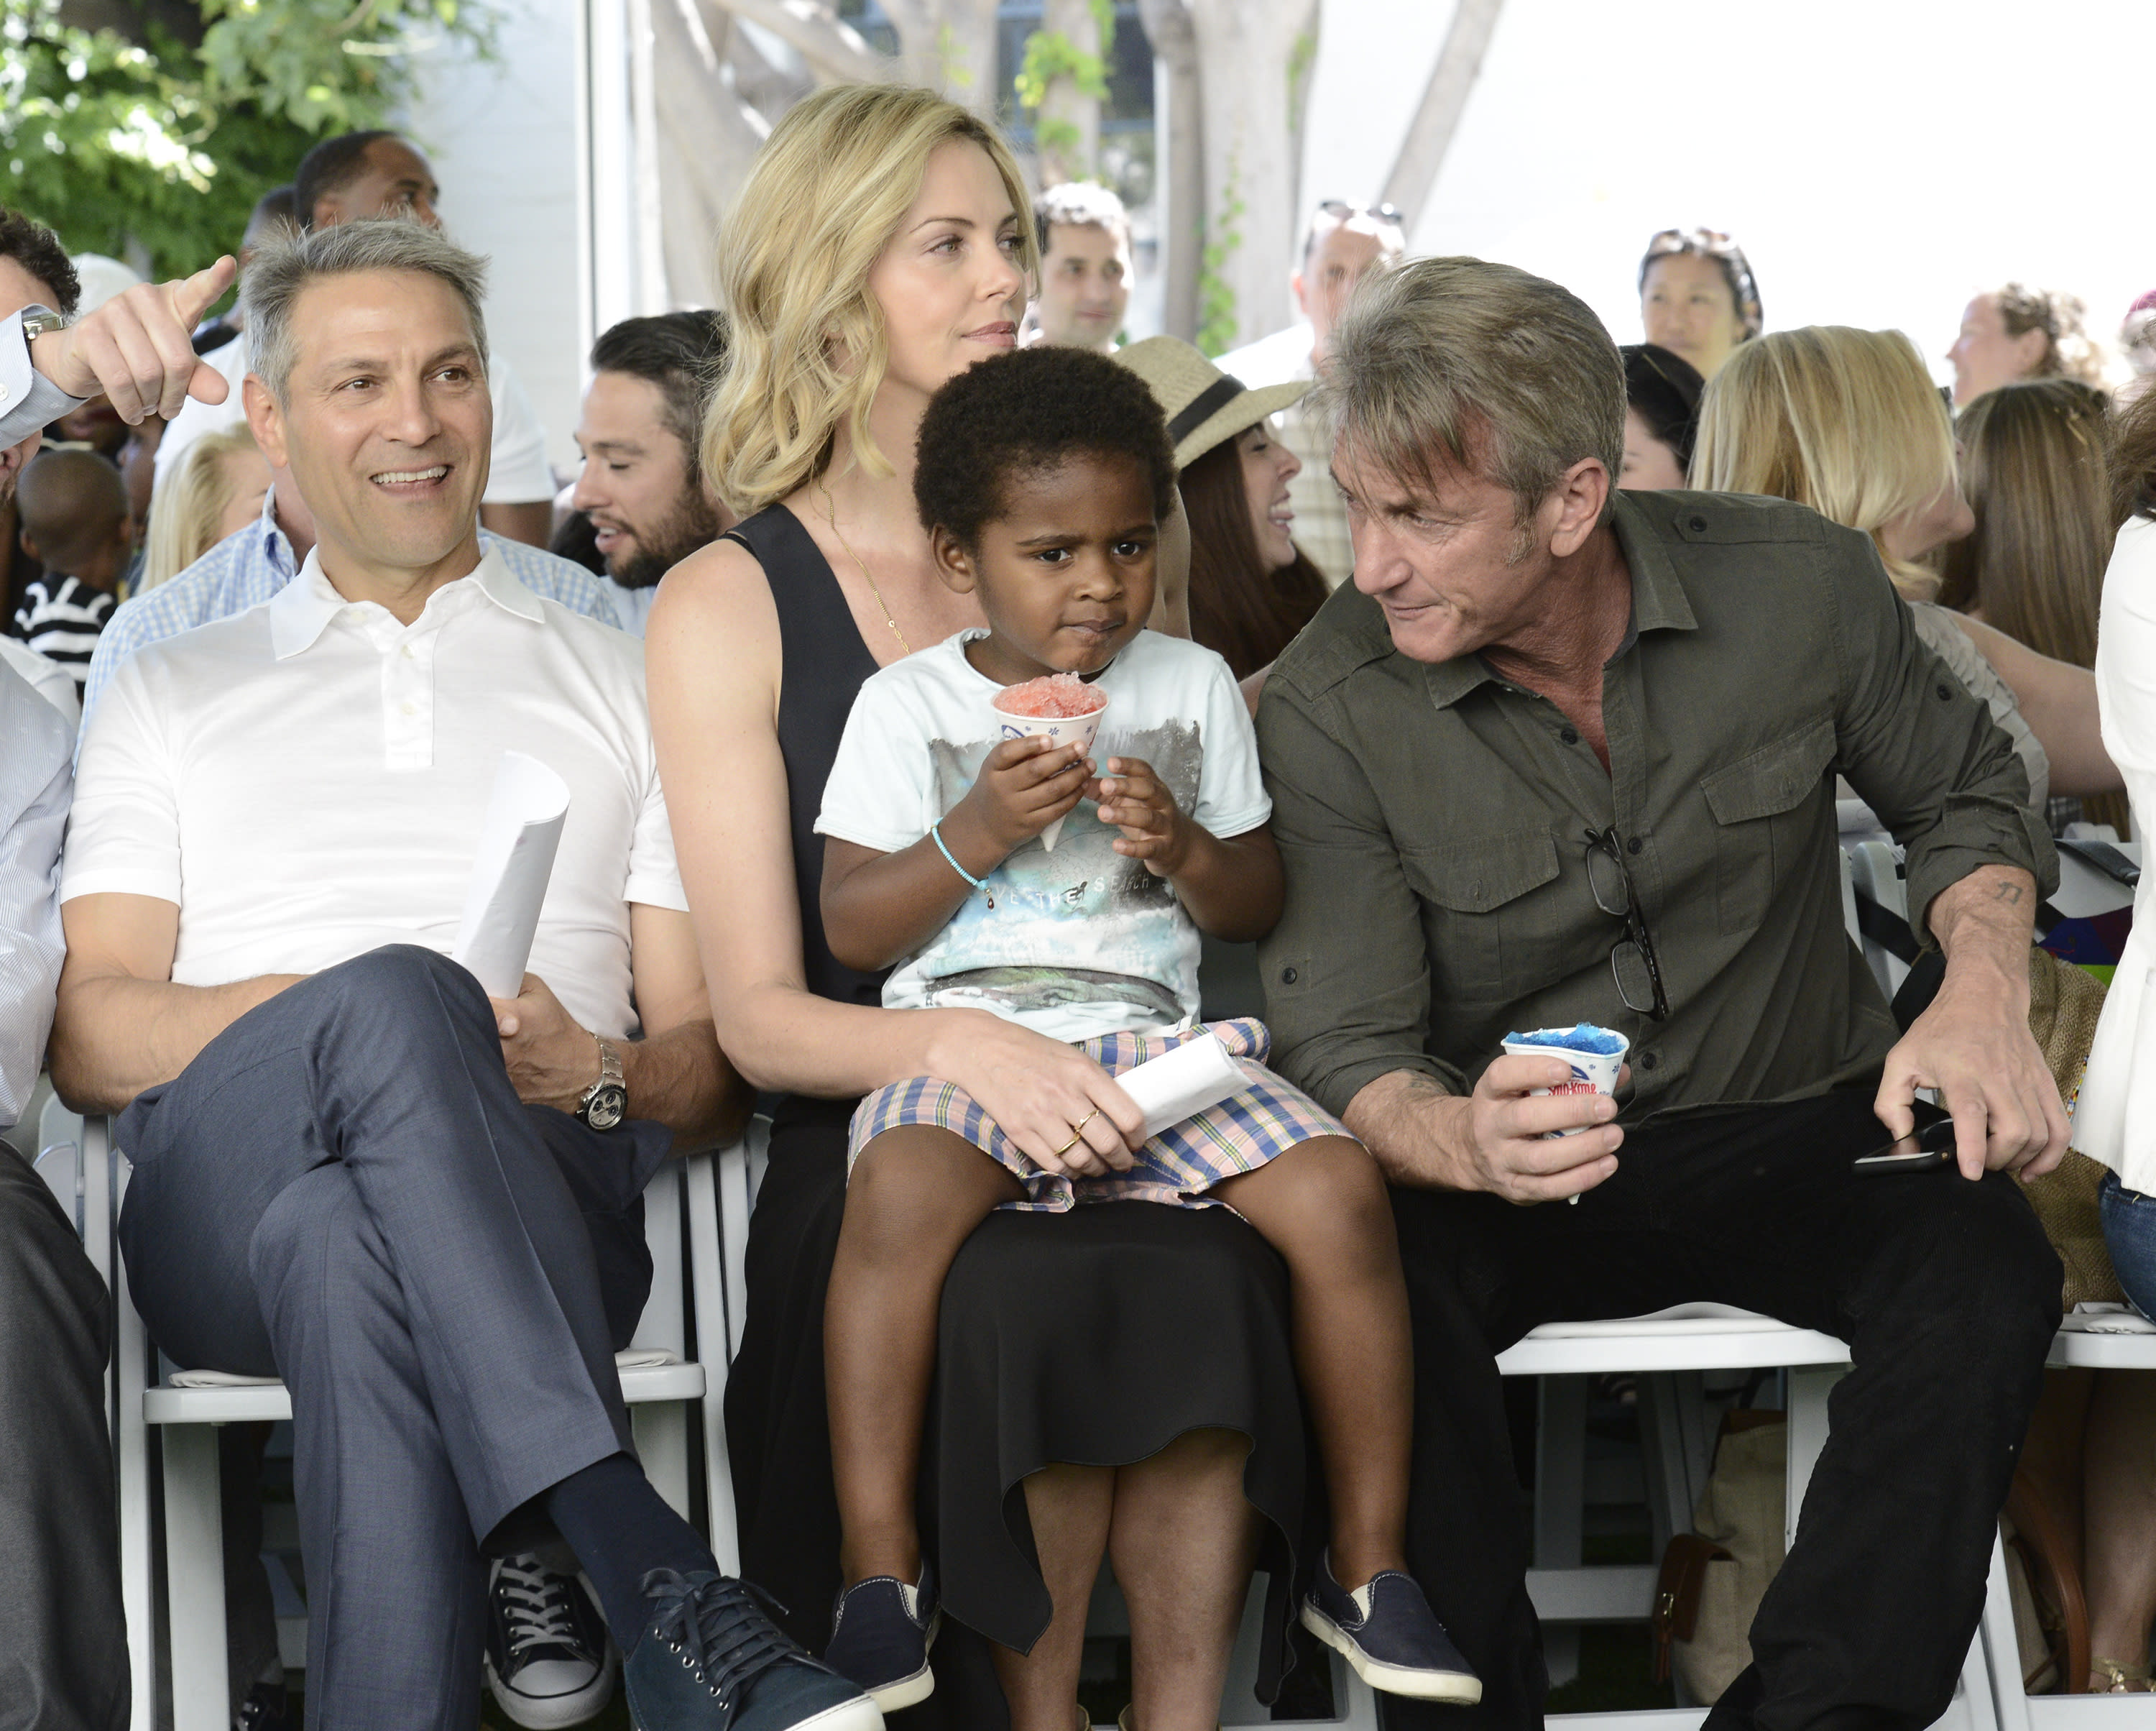 From left to right, WME Co-CEO Ari Emanuel, Jackson Theron, actress Charlize Theron, and actor Sean Penn attend the generationOn block party at Fox Studios in Los Angeles on Saturday, April 18, 2015. (Photo by Dan Steinberg/Invision/AP)